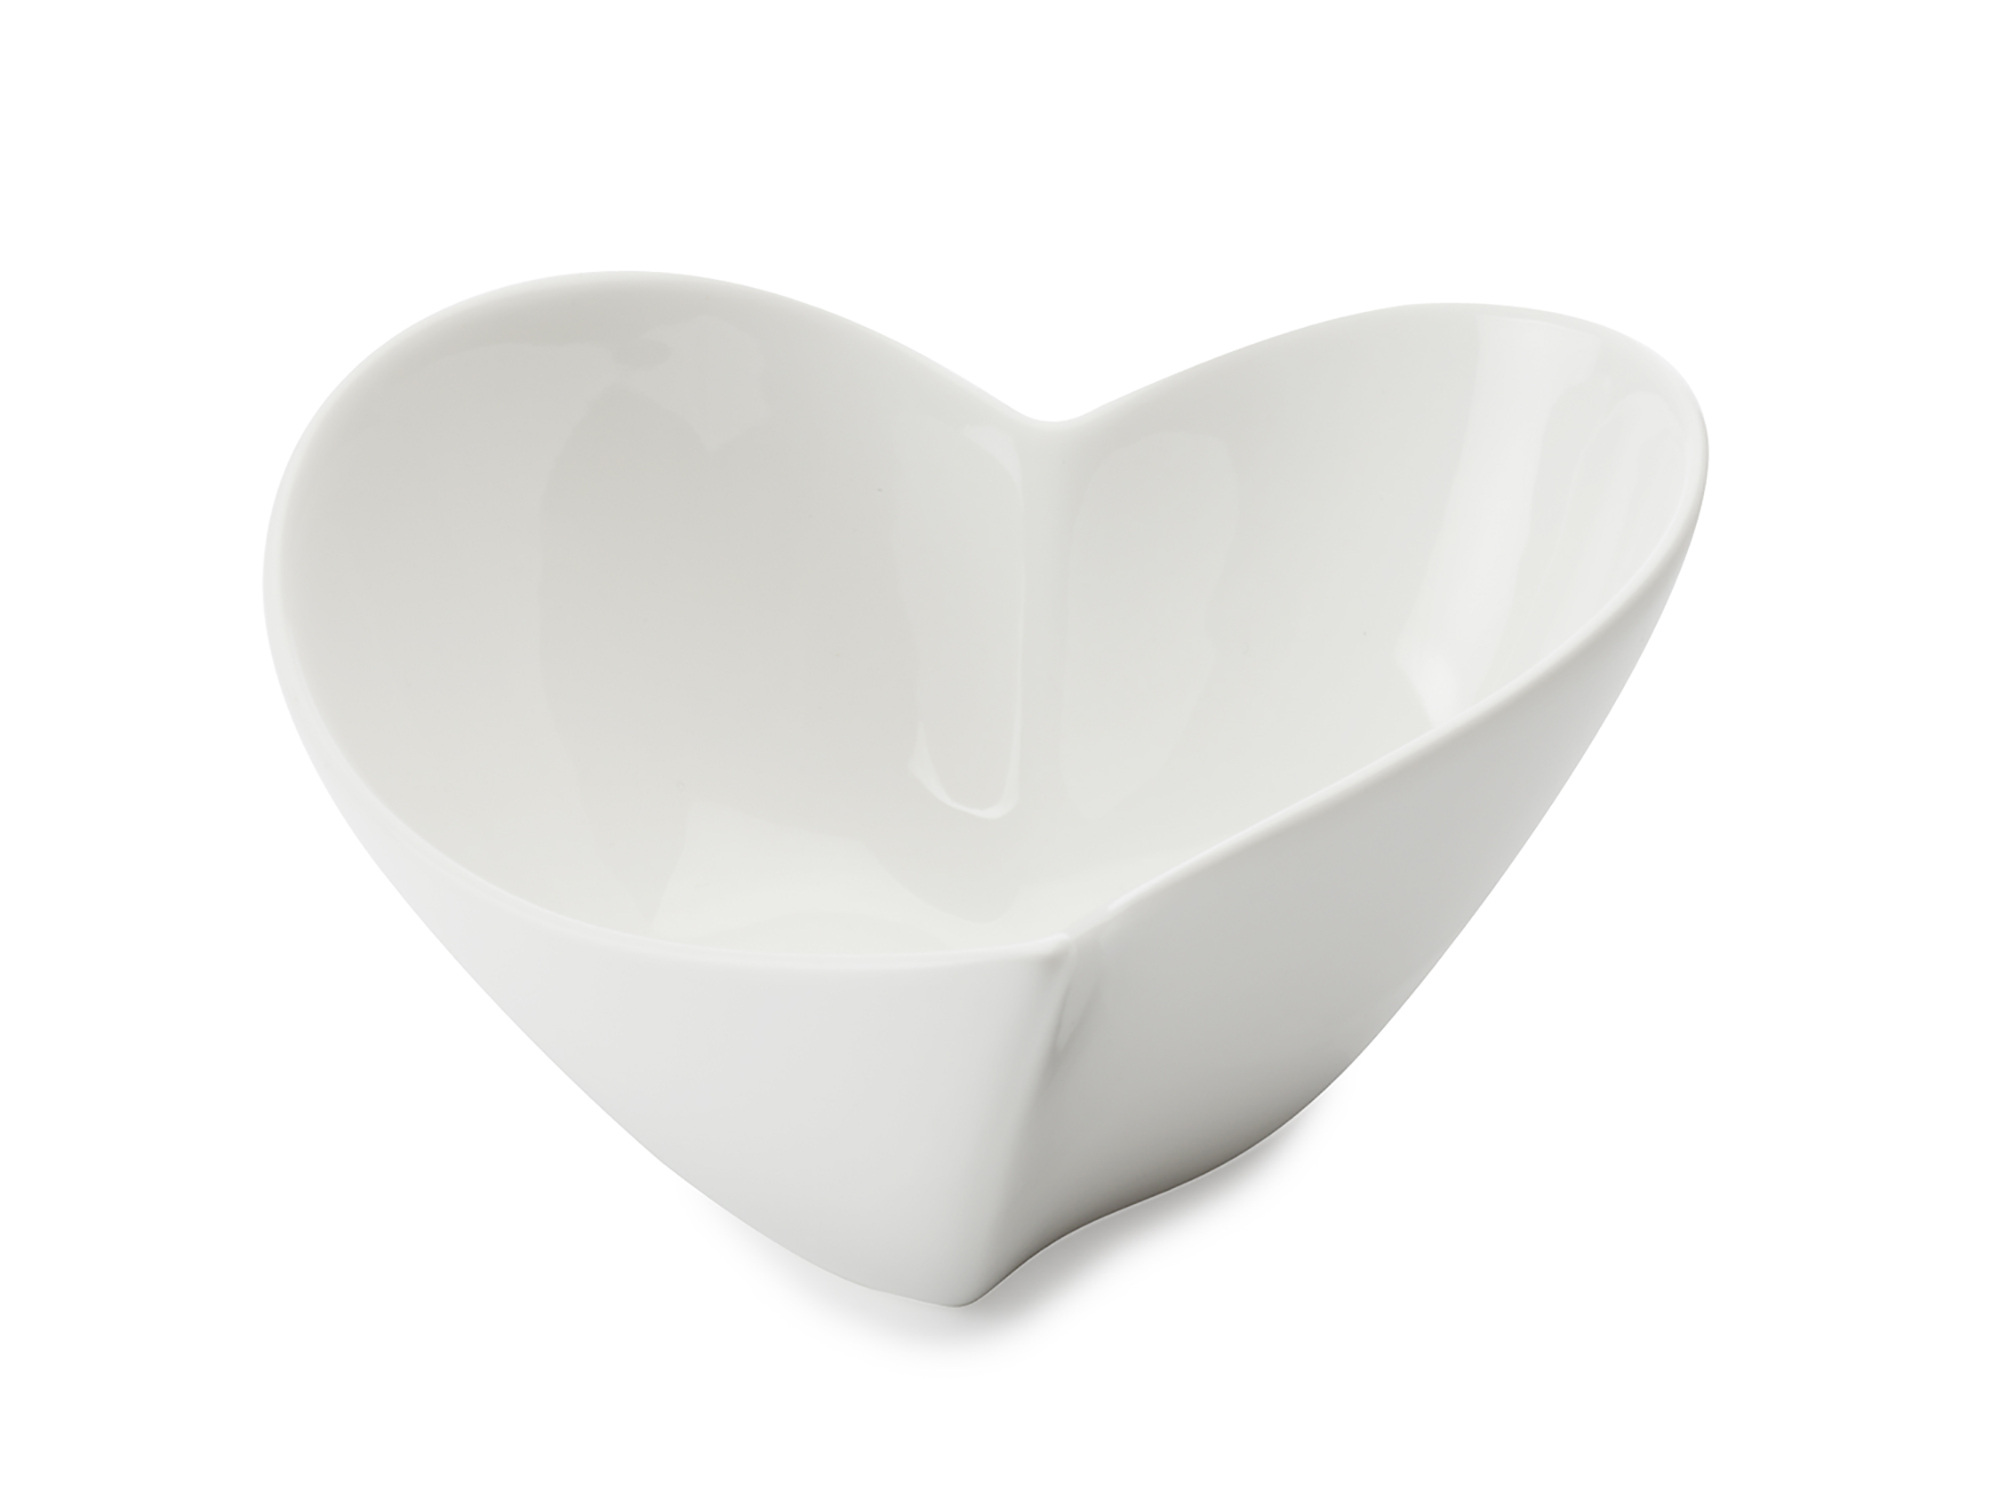 Maxwell & Williams White Basics Heart 11Cm Bowl